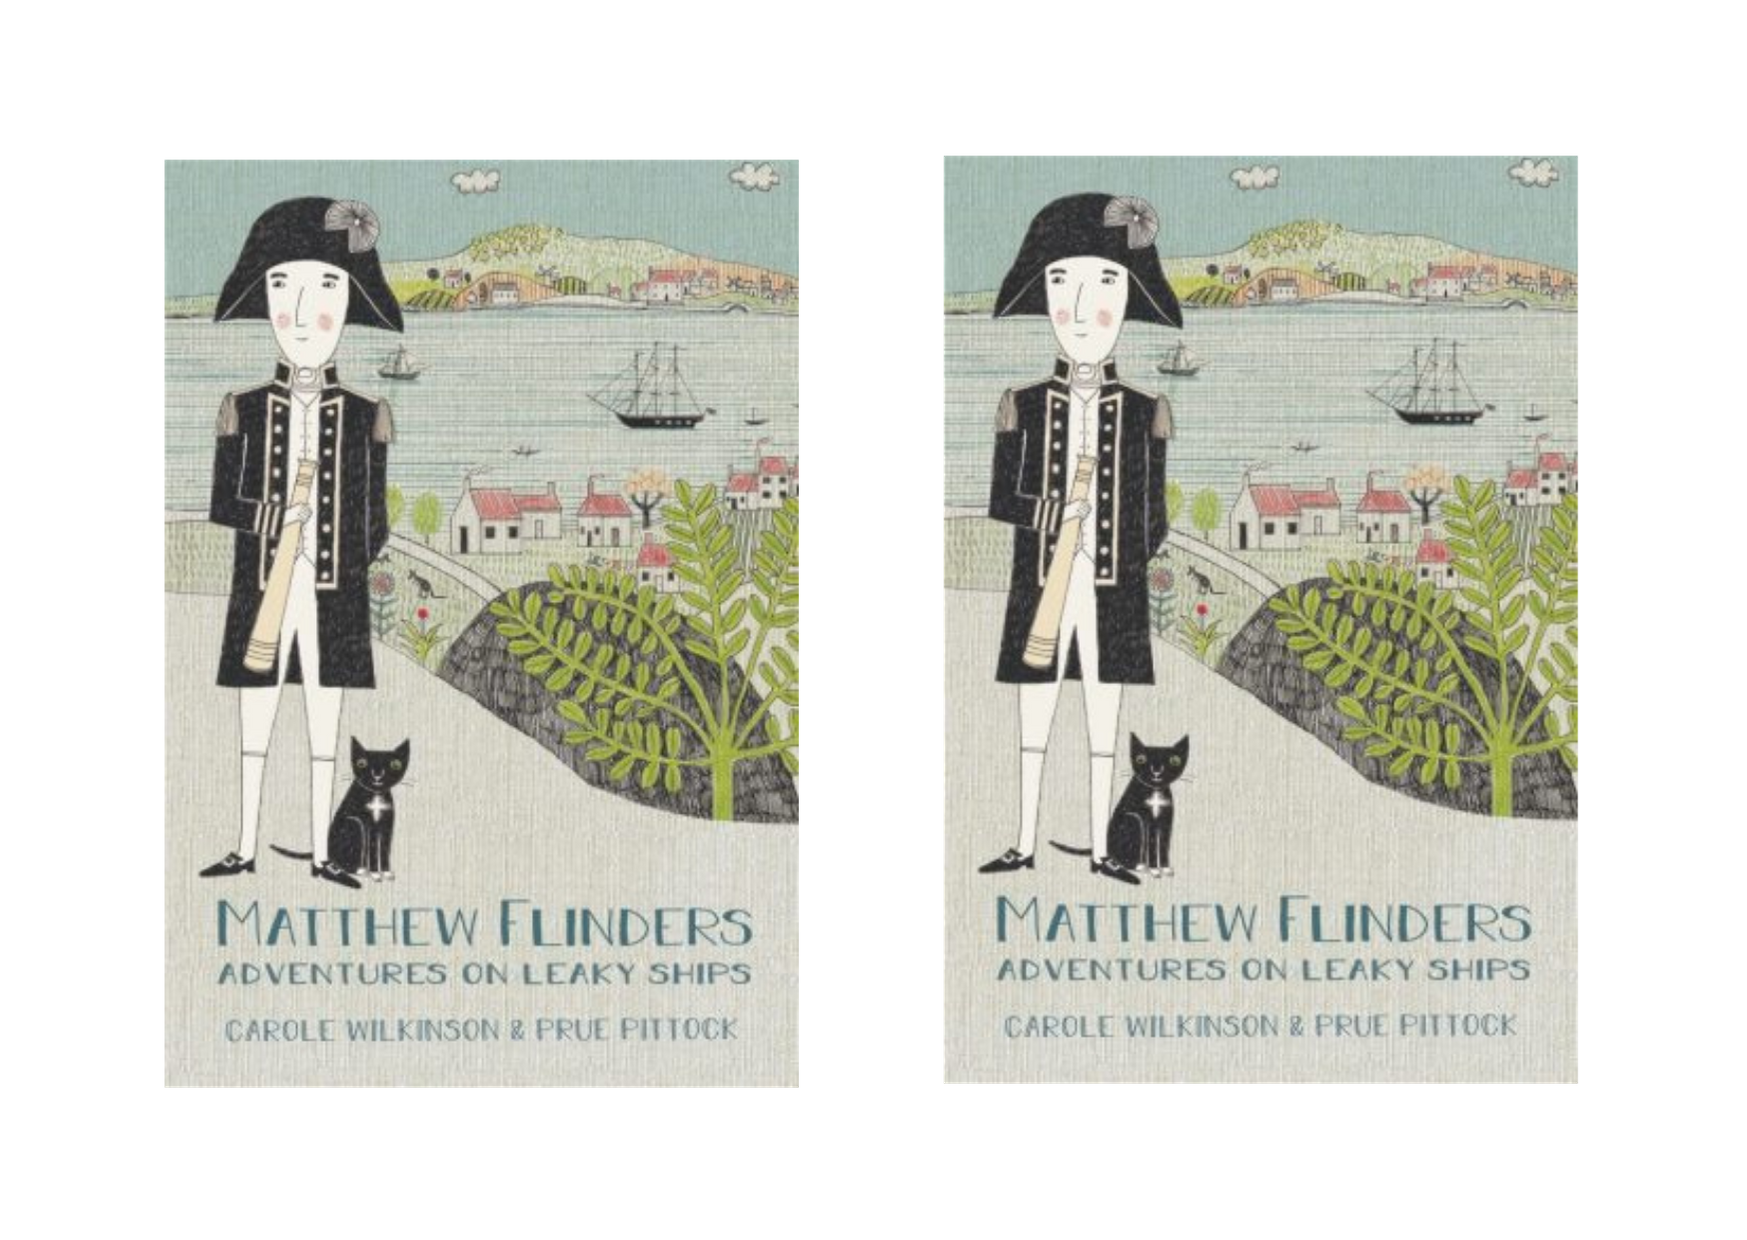 WDog T - Matthew Flinders: Adventures on